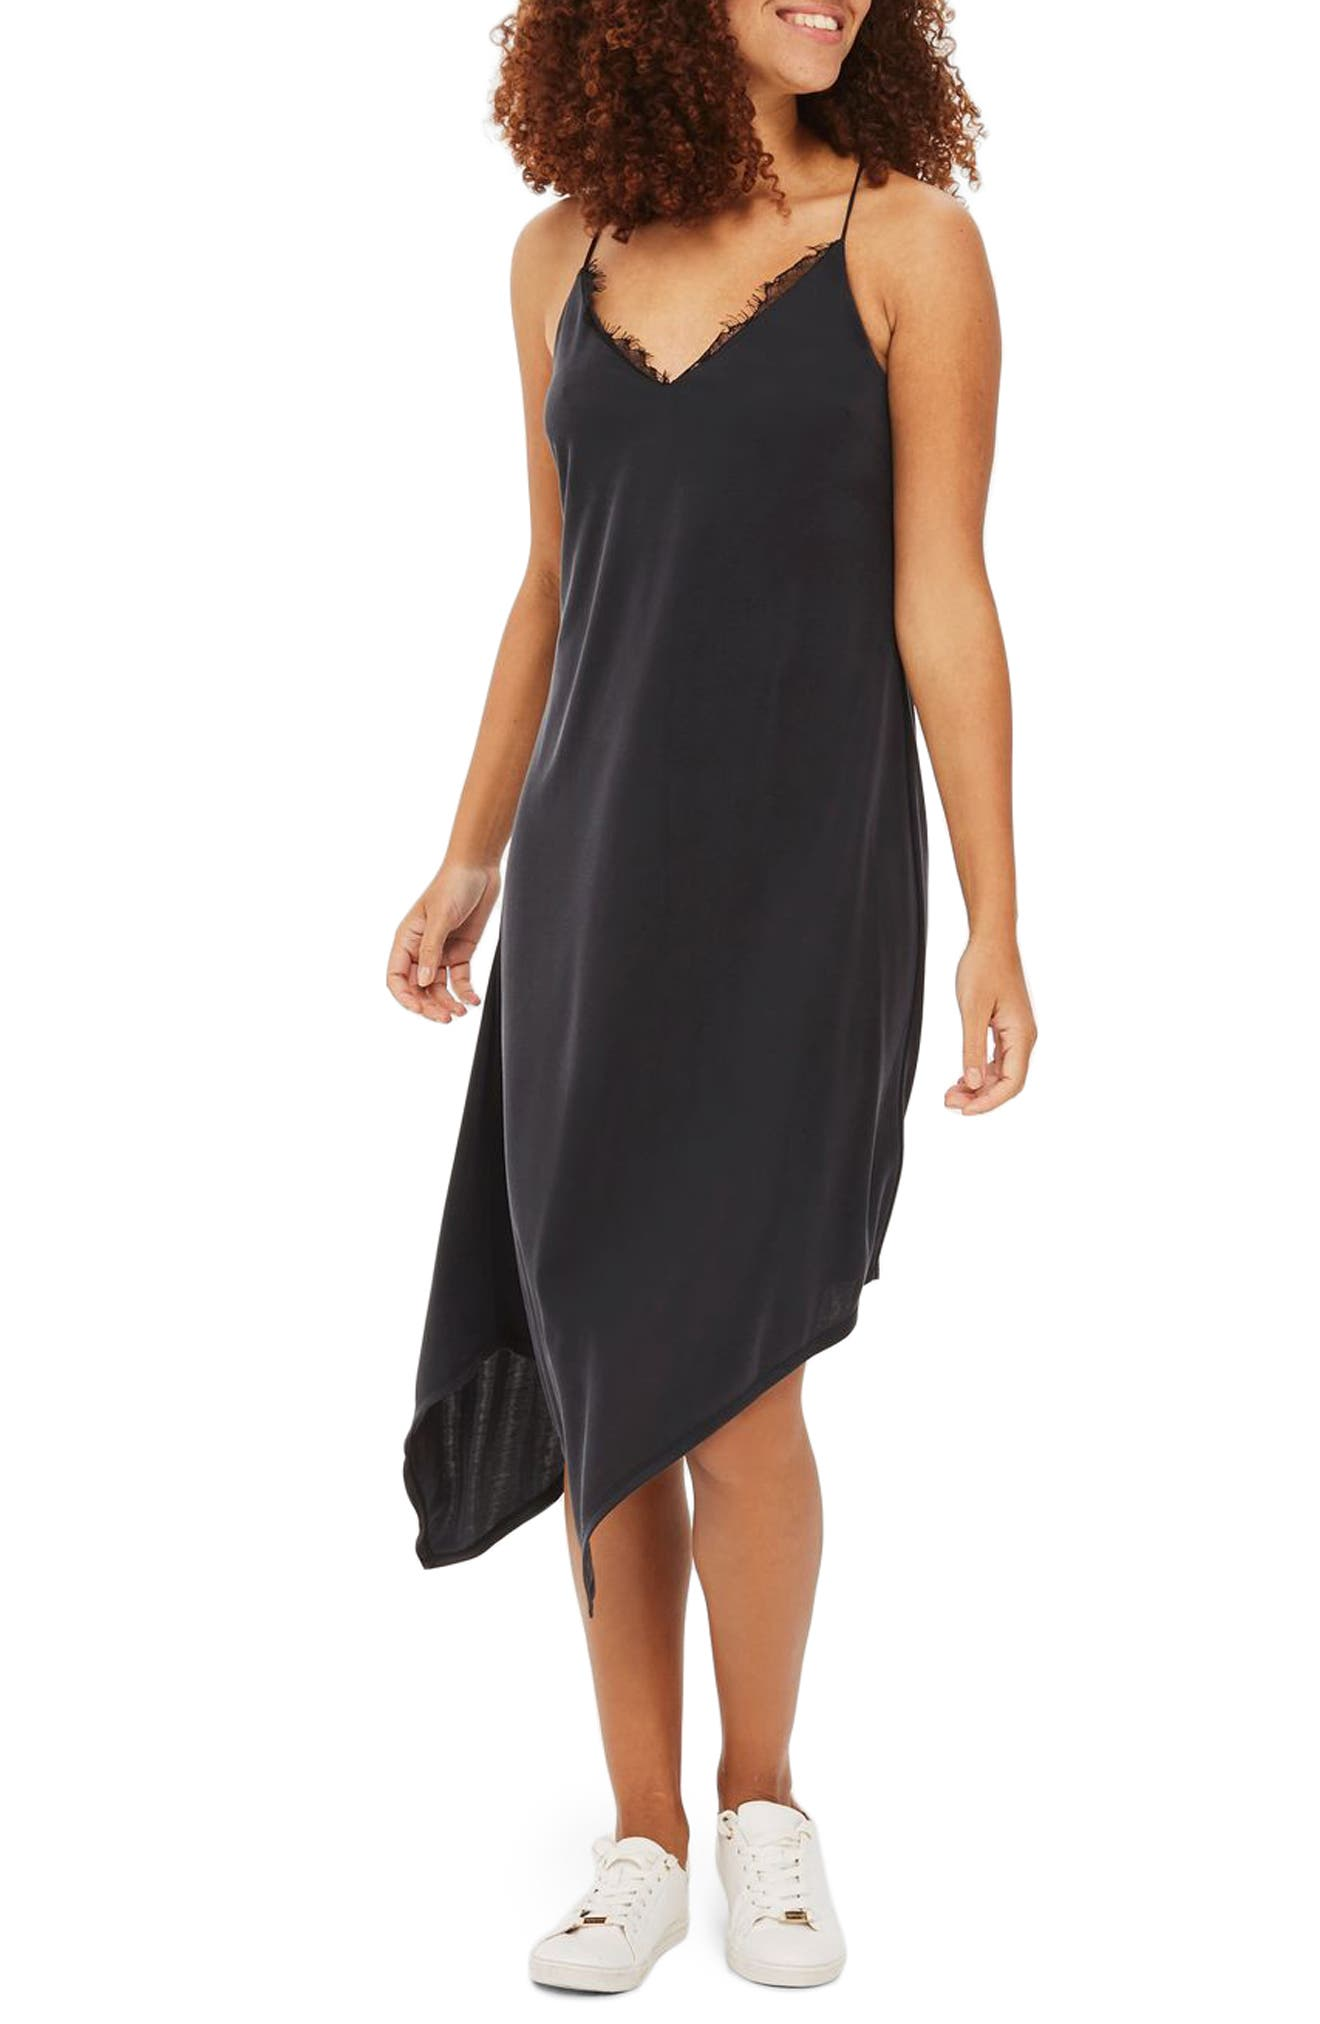 Topshop Asymmetrical Slipdress